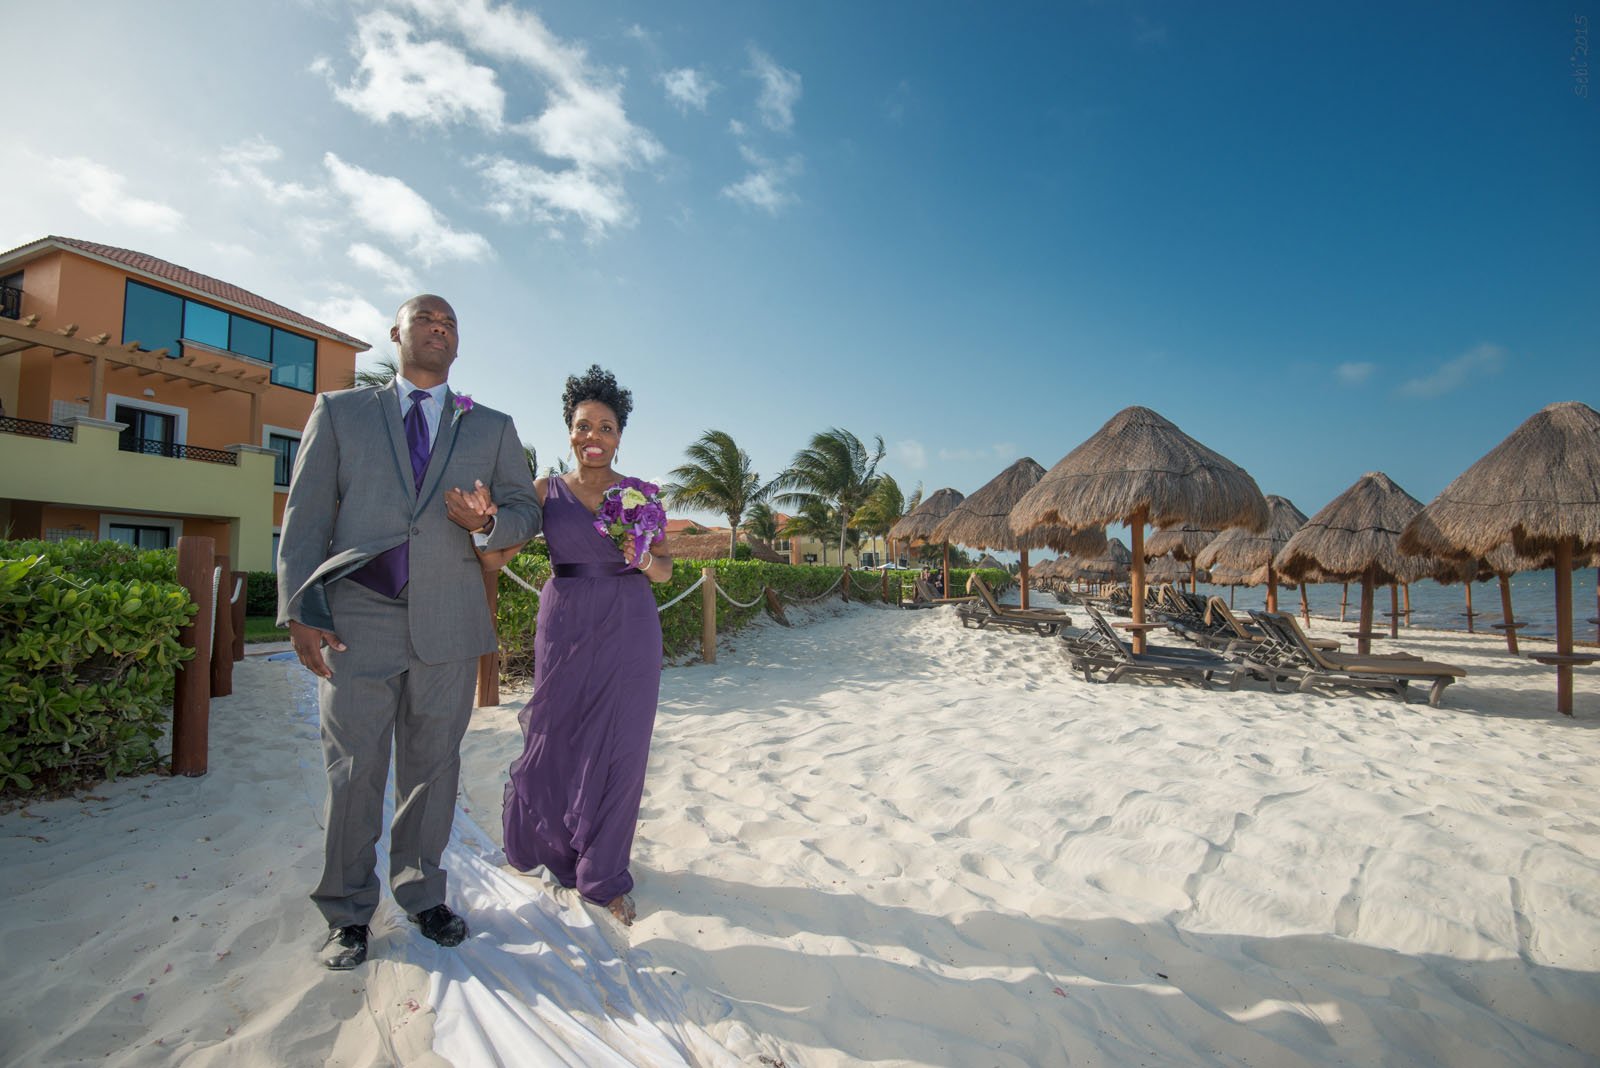 Best destination wedding locations chris and erica for Popular destination wedding locations